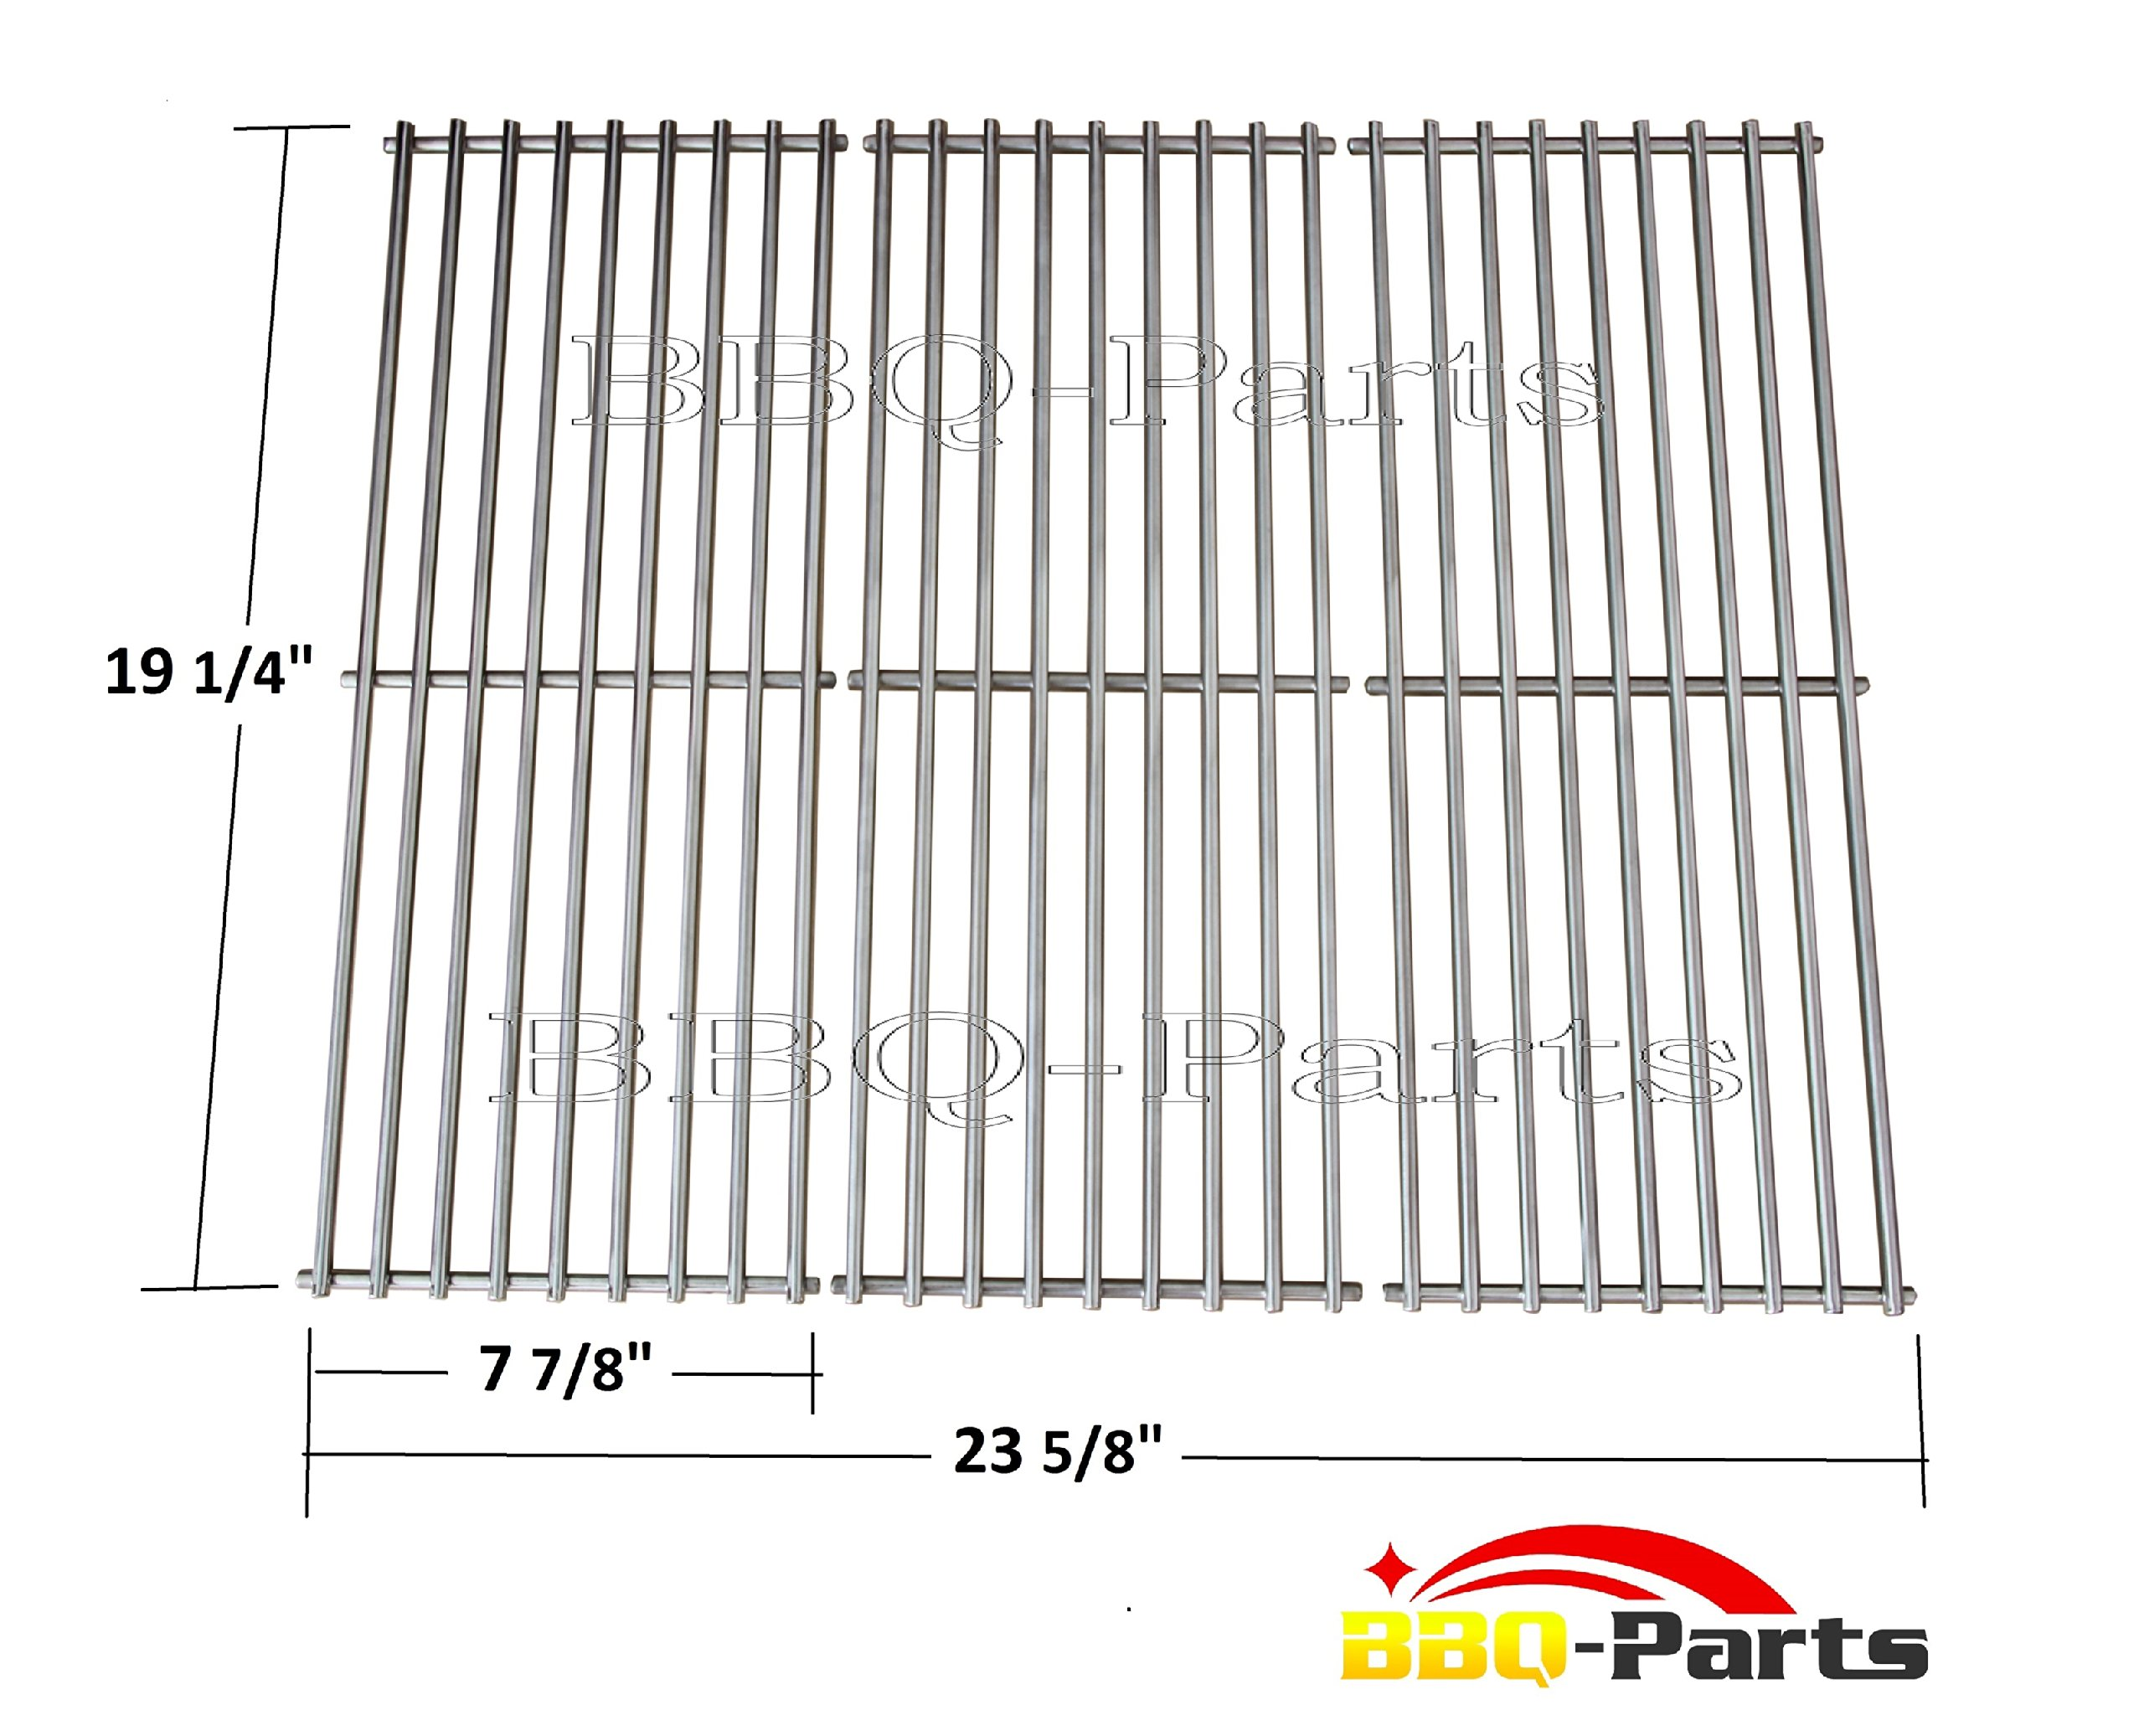 Scs531 3 Stainless Steel Cooking Grid Replacement For Nexgrill Perfect Flame